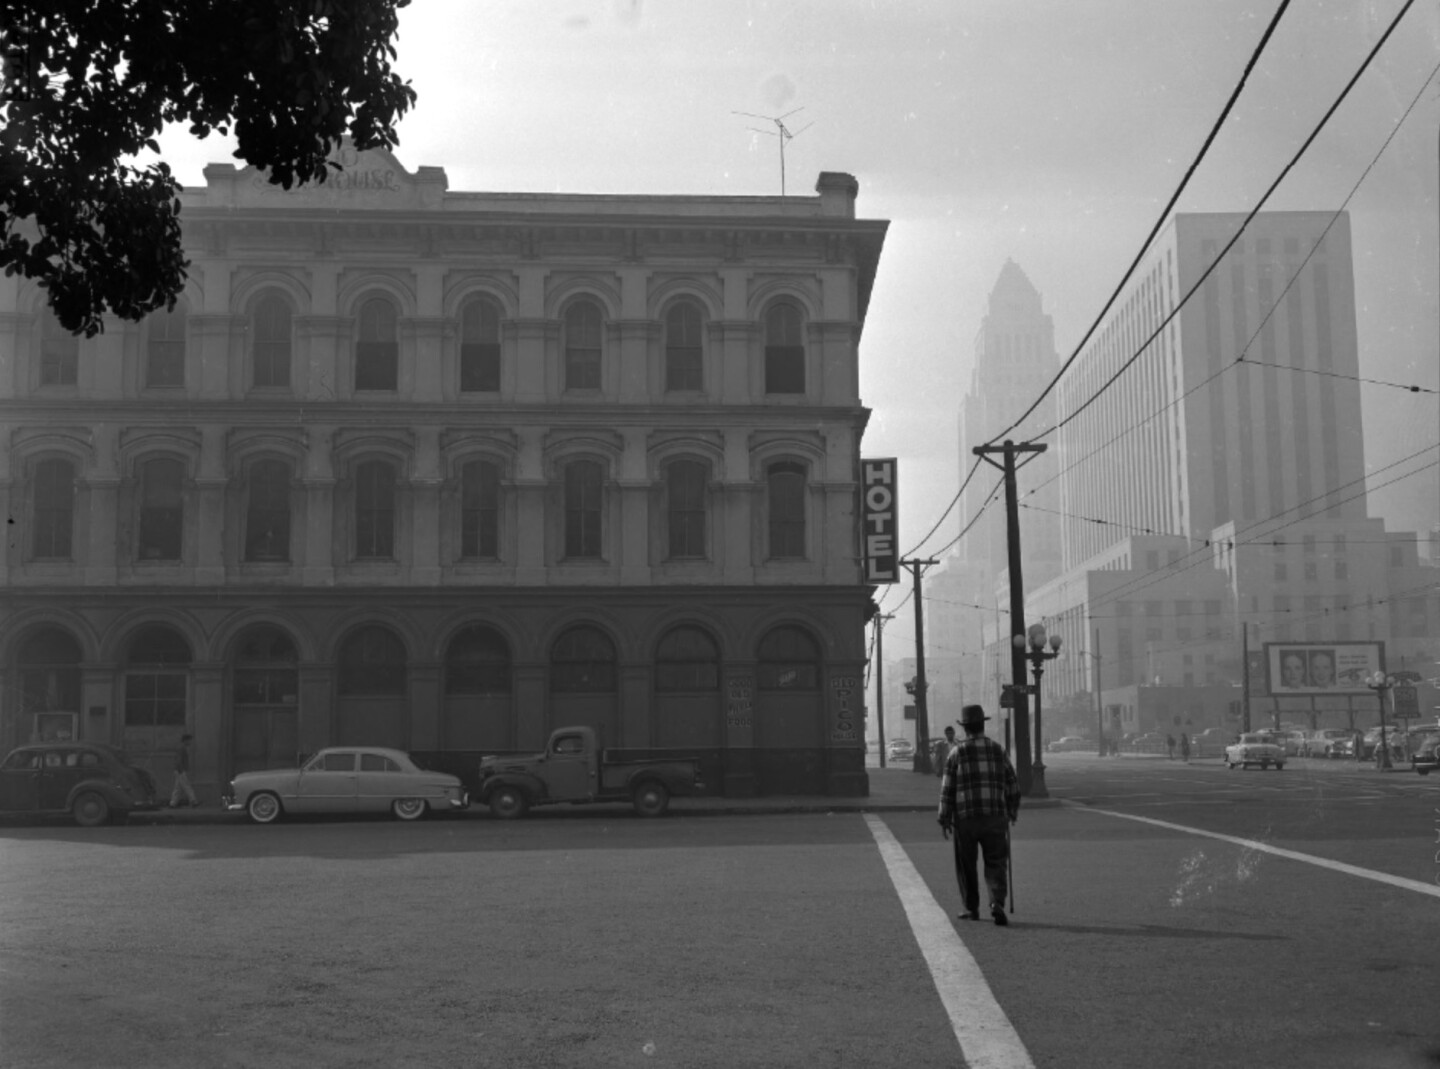 Exterior view of the Pico House and surrounding buildings, Los Angeles, Calif., 1956